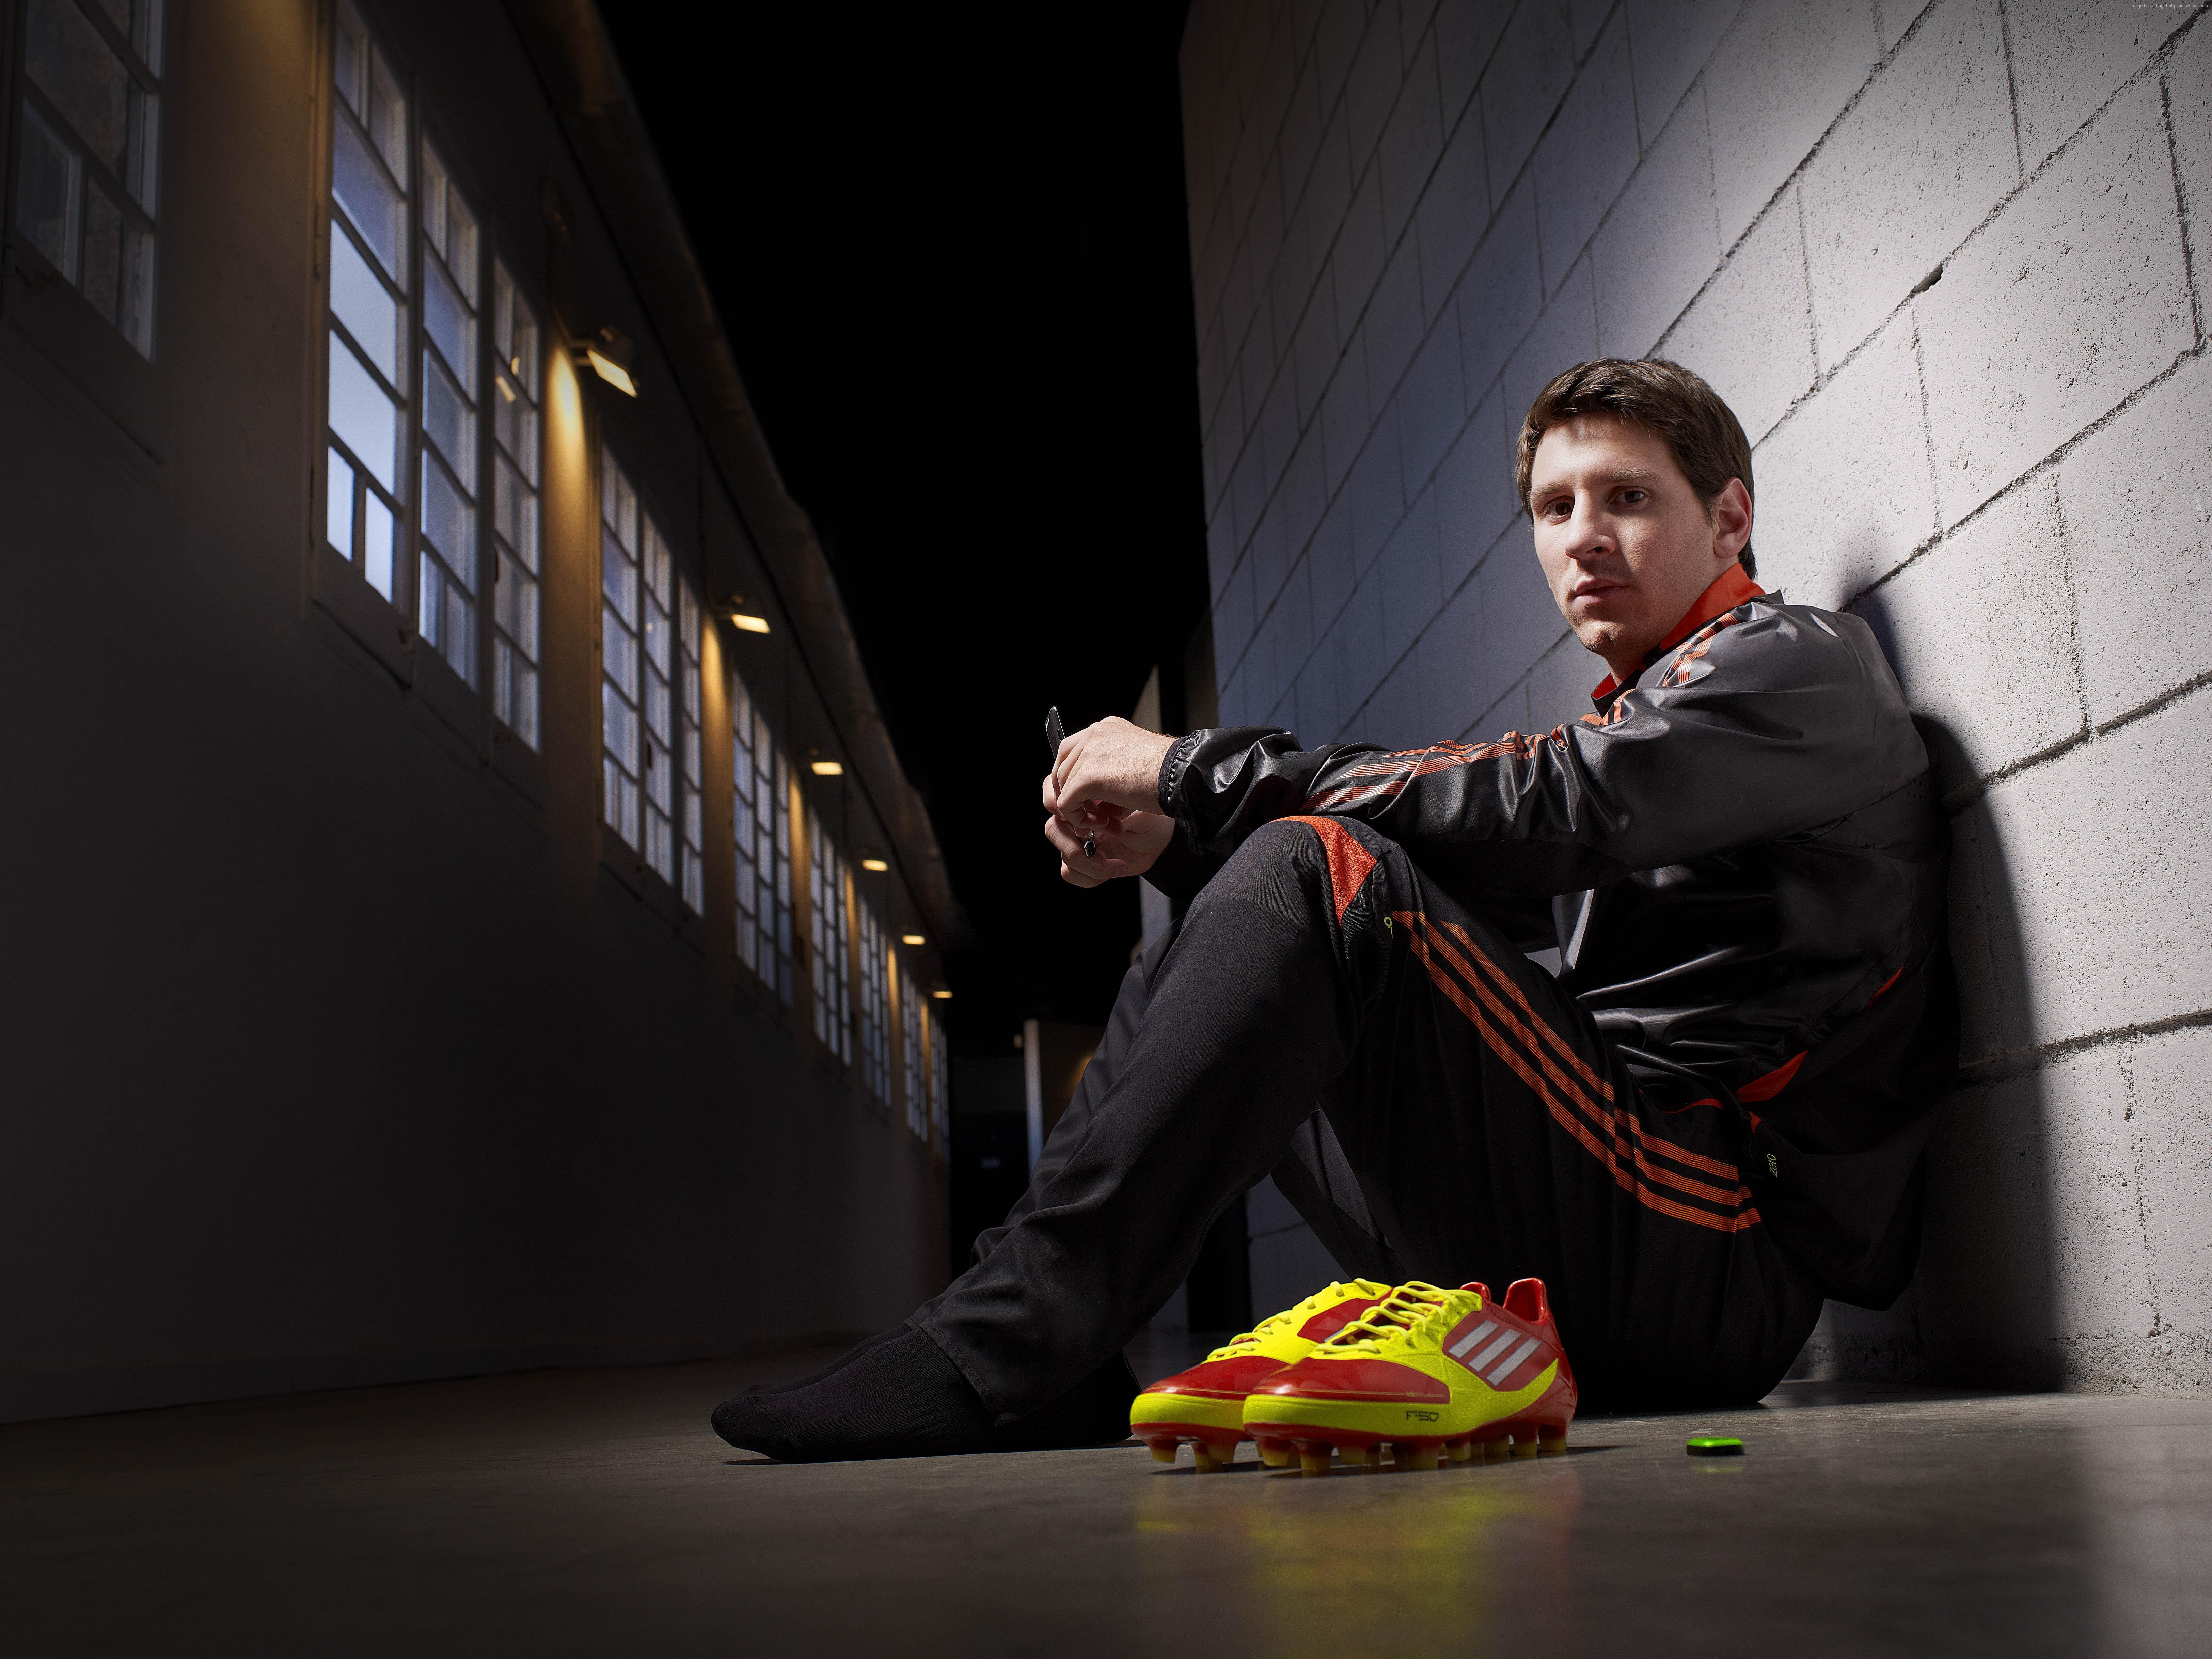 Wallpaper Football Lionel Messi soccer The best players 6496x4872